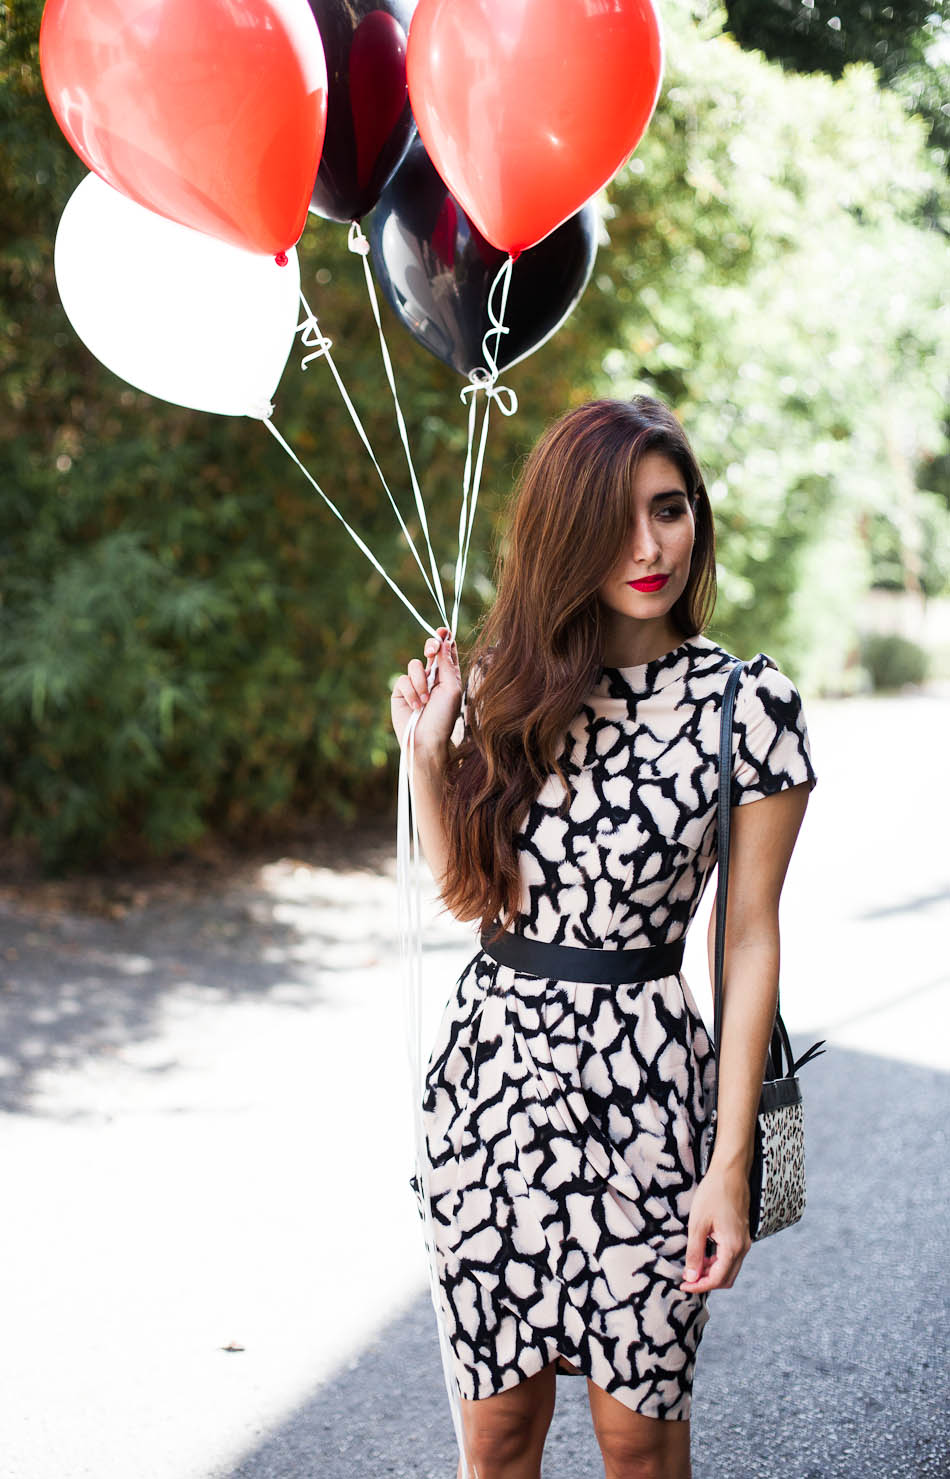 The asos tulip dress in animal print #style #love